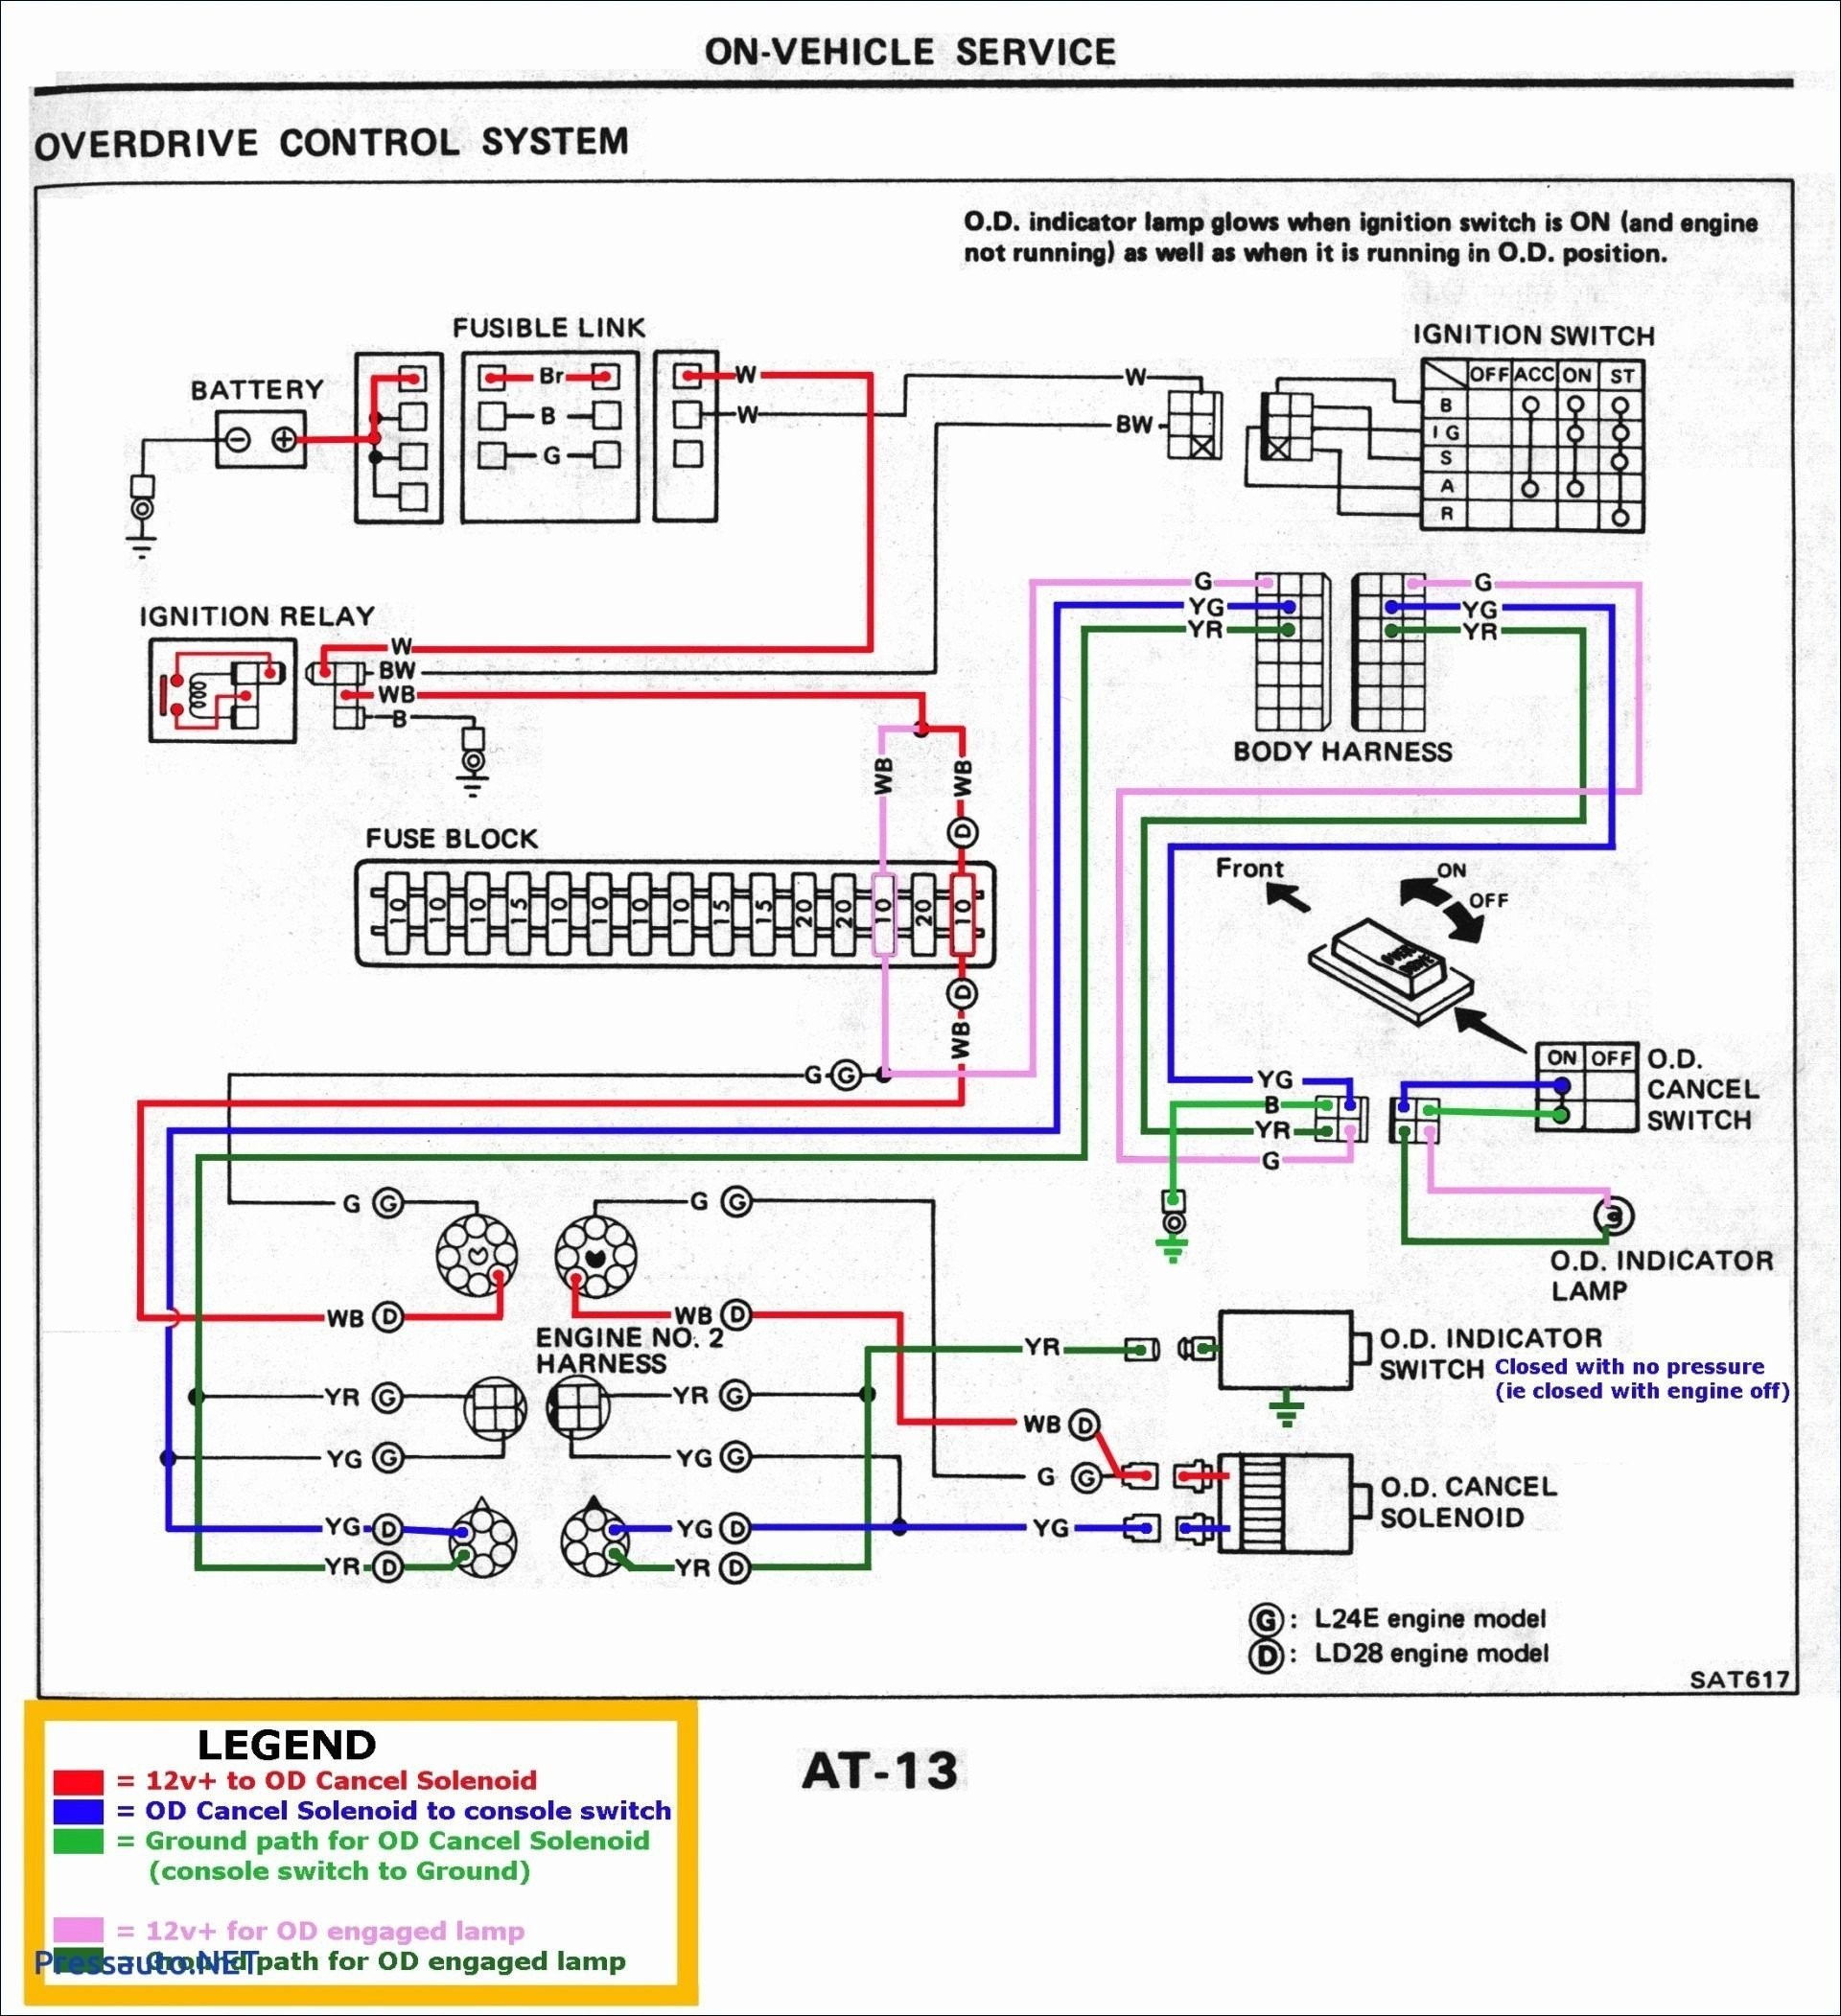 1995 Jeep Wrangler Engine Diagram 2000 Dodge Ram Van Engine Wiring Schematic Trusted Schematics Diagram Of 1995 Jeep Wrangler Engine Diagram 2011 Jeep Grand Cherokee Wiring Diagram Download